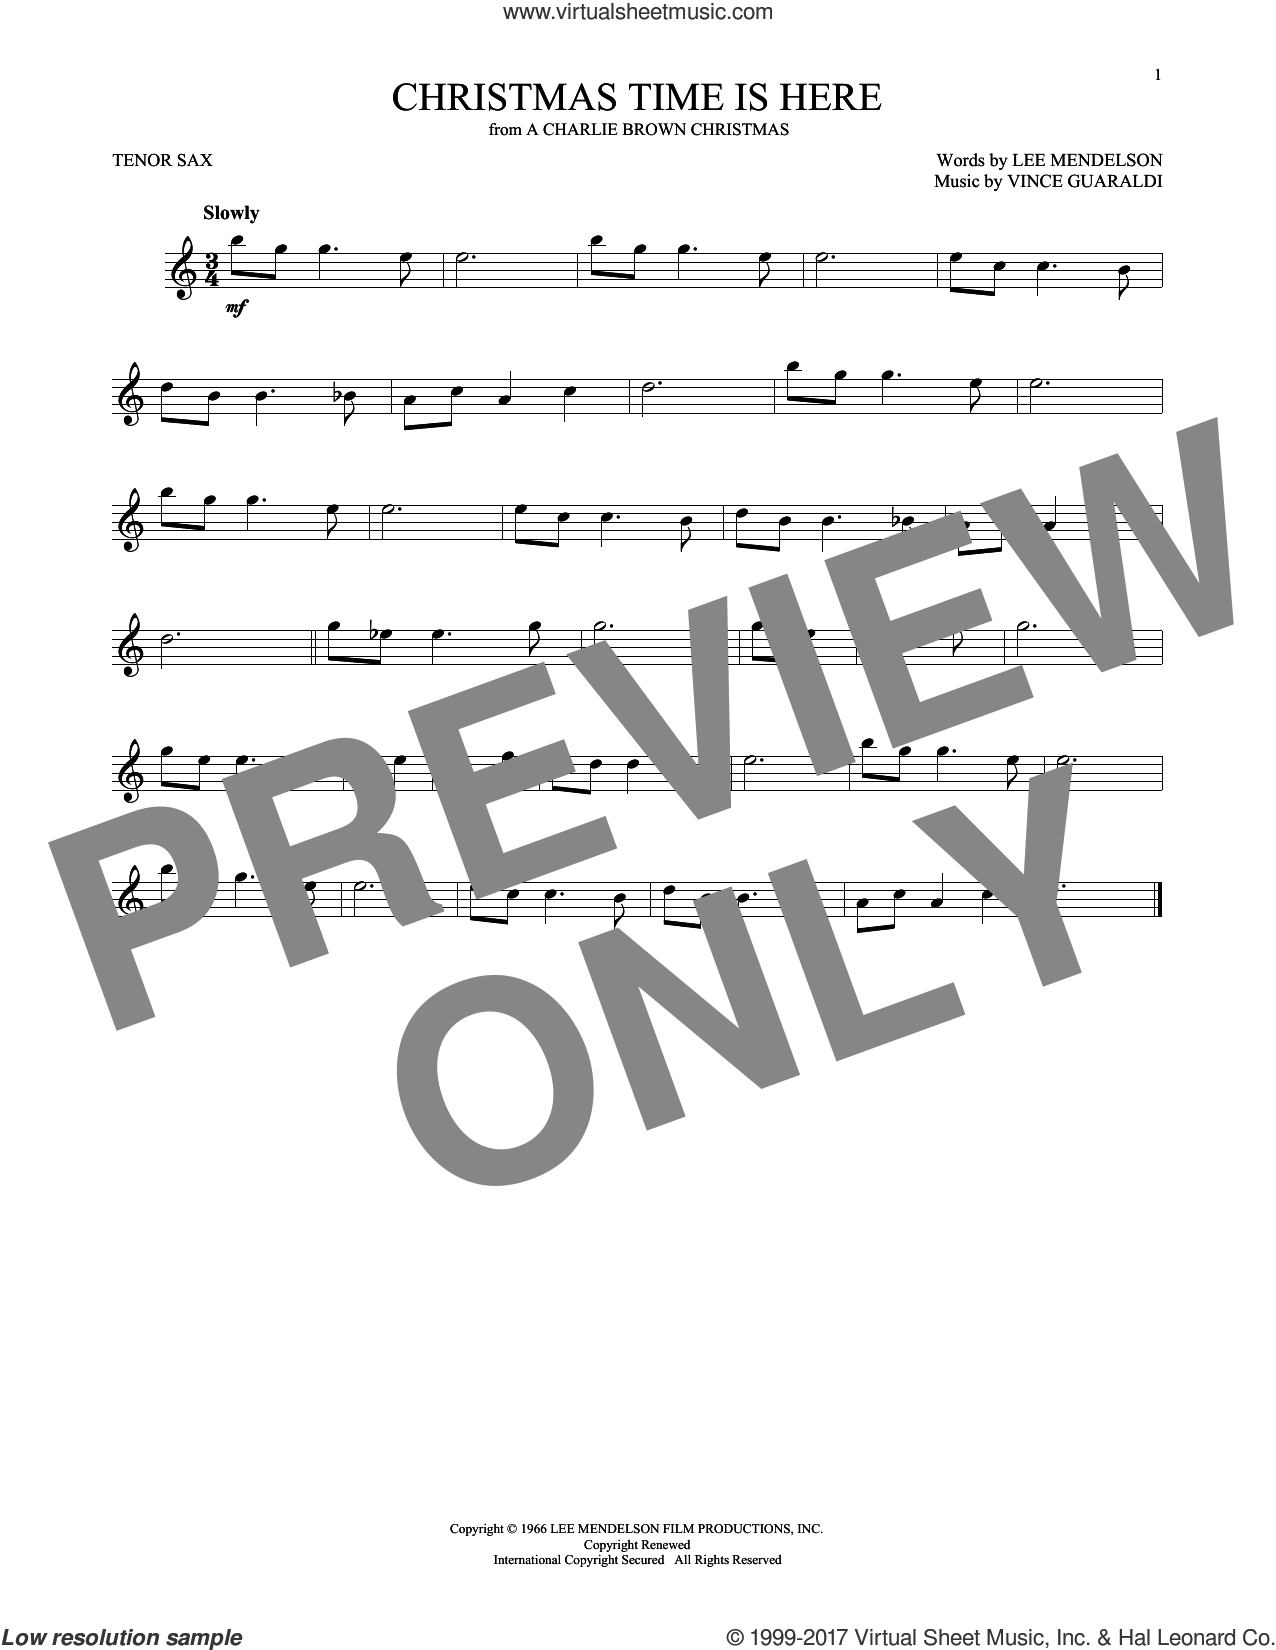 Christmas Time Is Here sheet music for tenor saxophone solo by Vince Guaraldi and Lee Mendelson, intermediate skill level